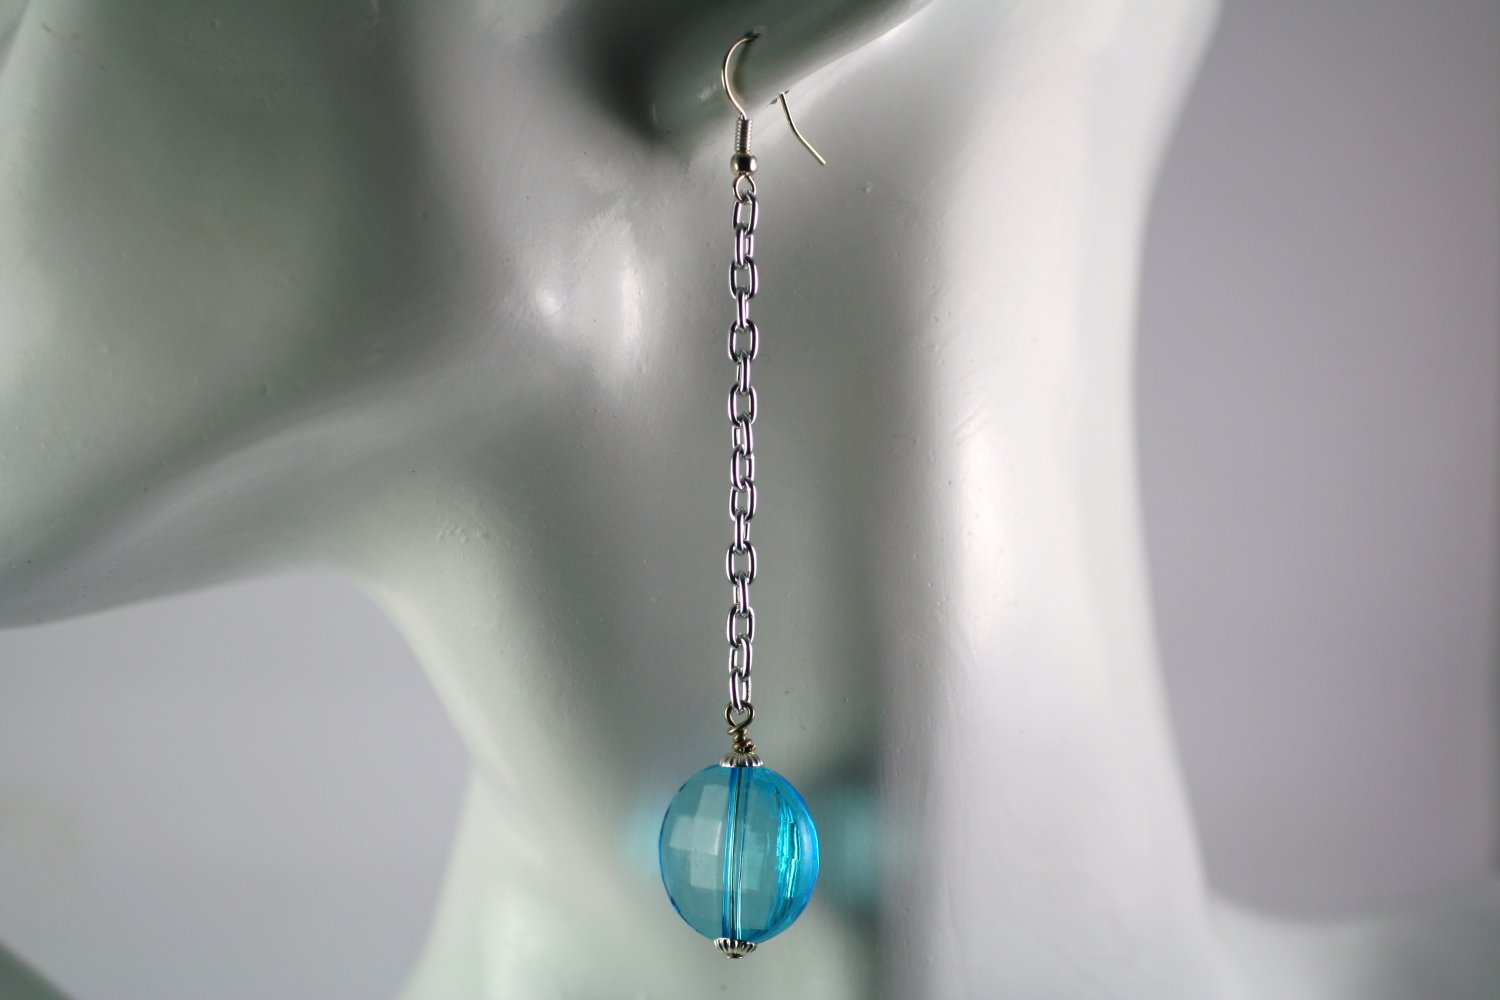 Silver Chain Drop Dangle Earrings with Blue Disc  Beads Handcrafted Jewelry